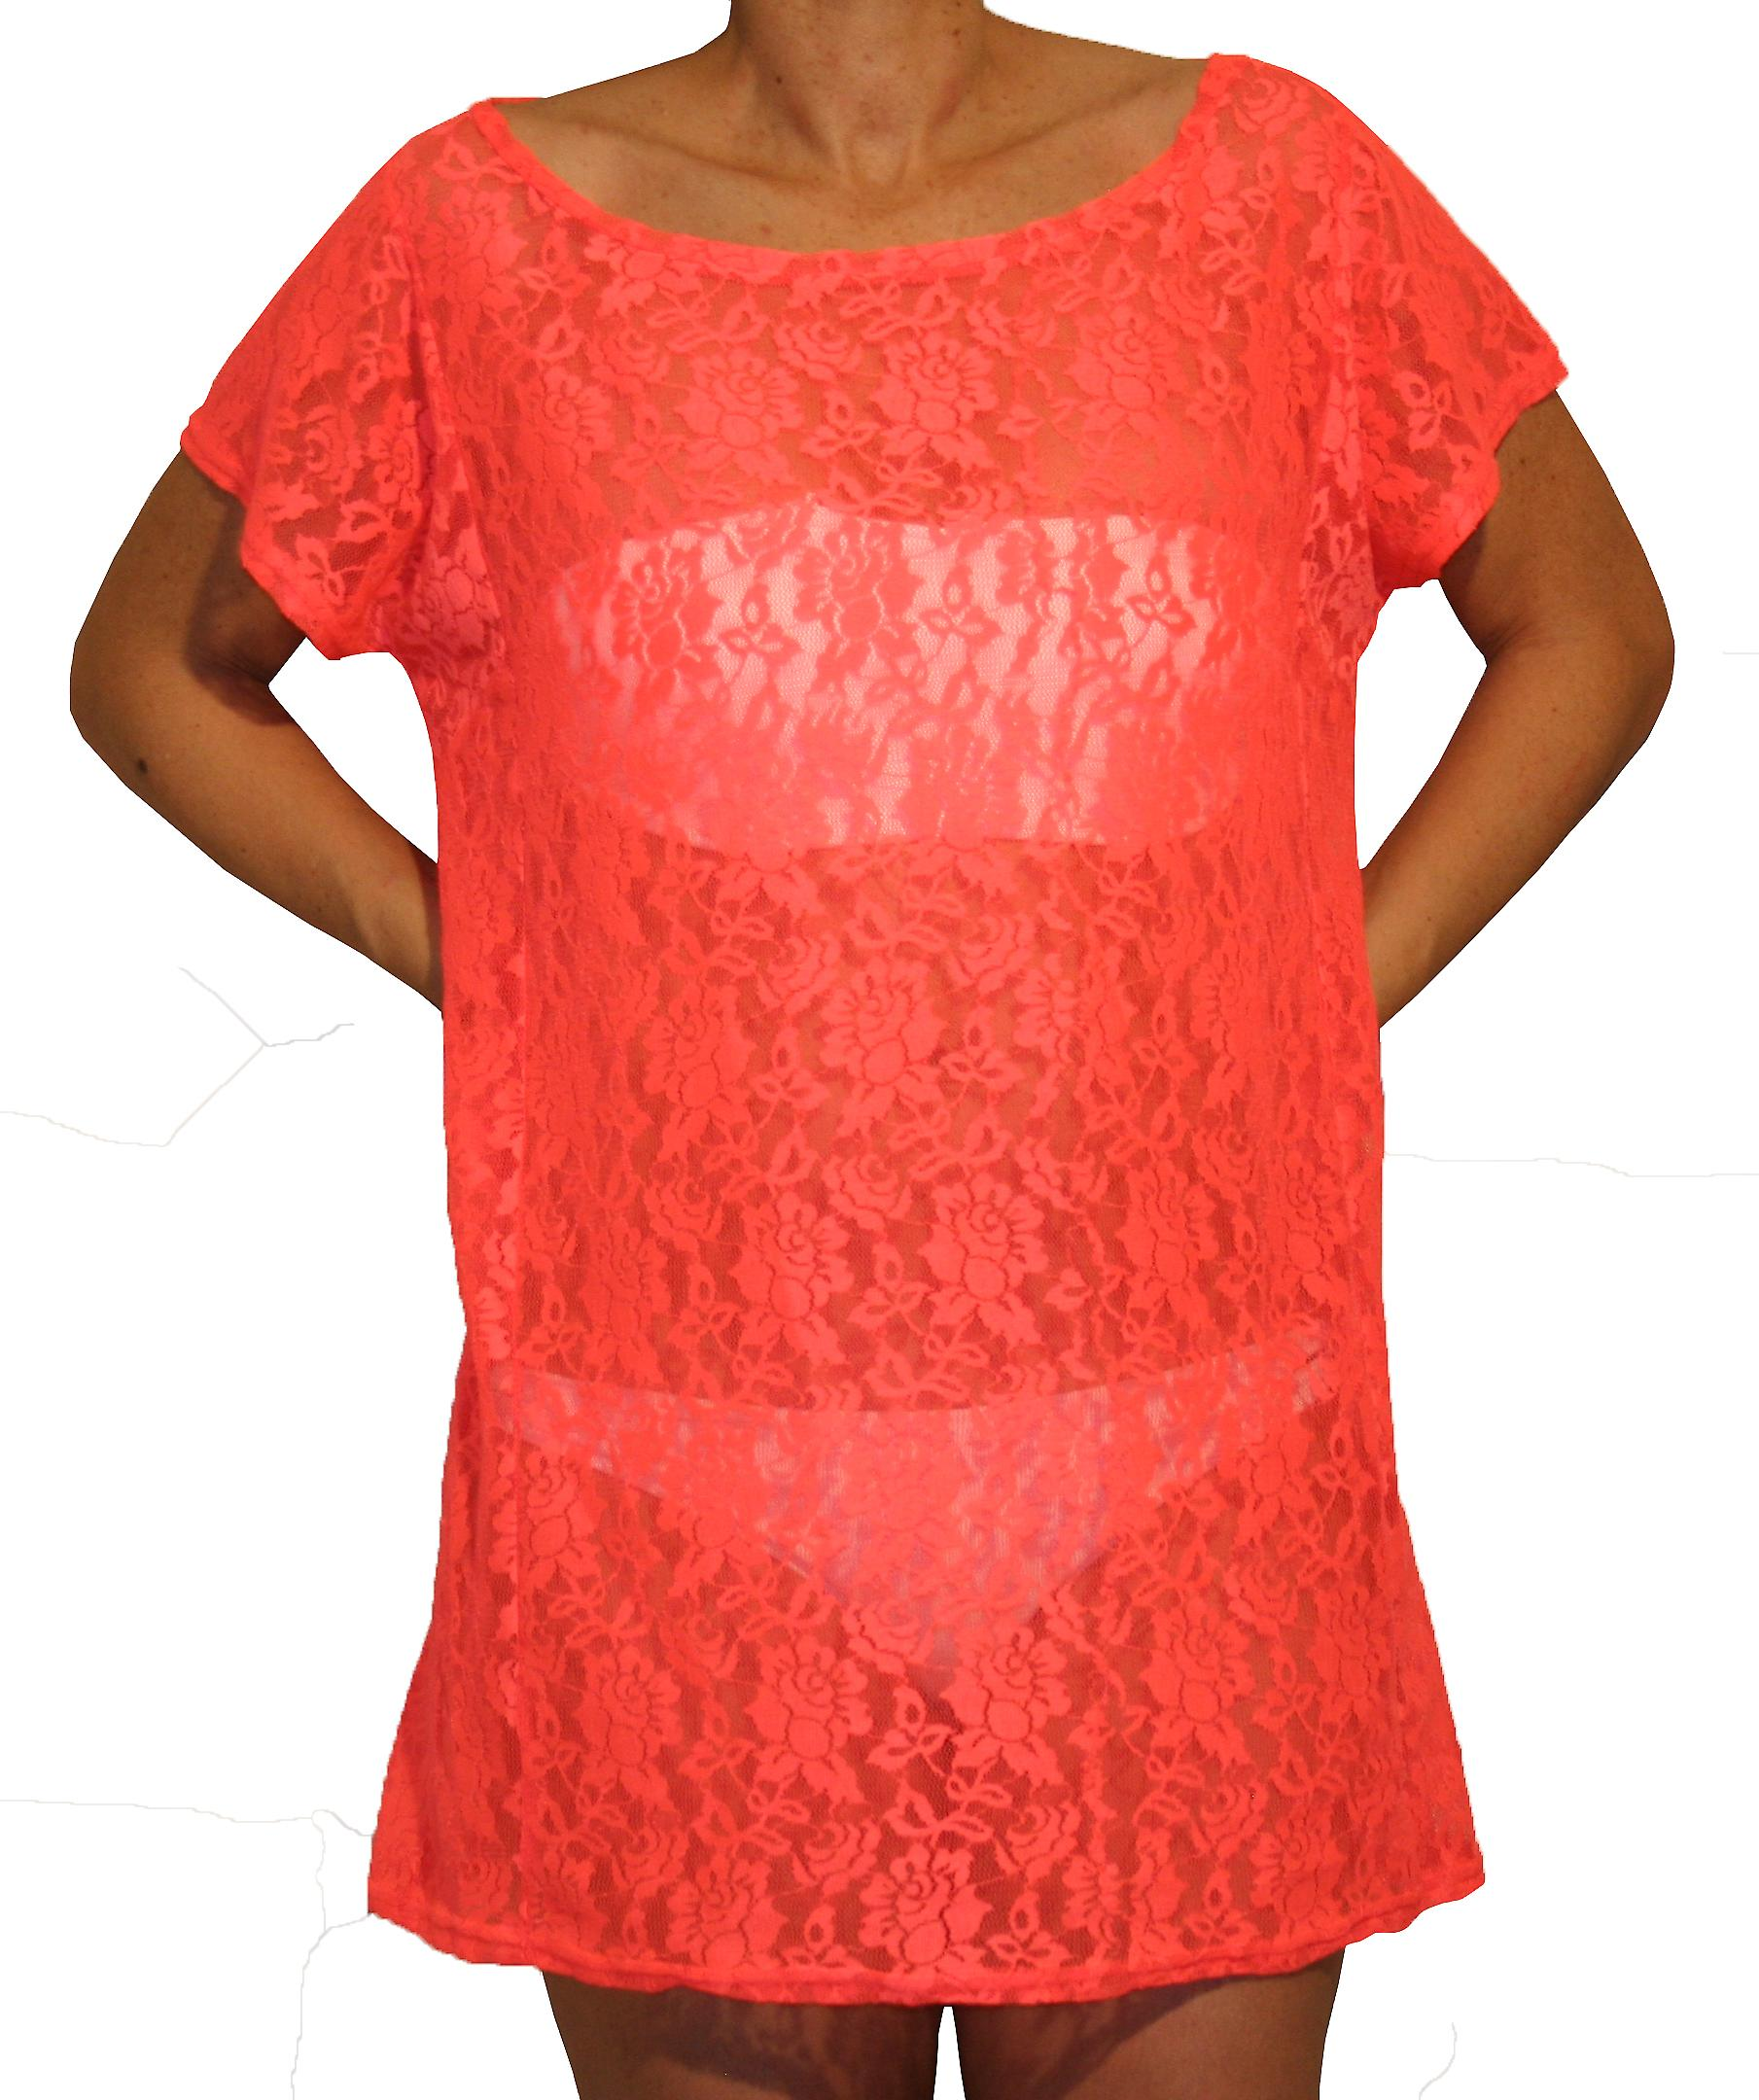 Waooh - Fashion - Top Lace